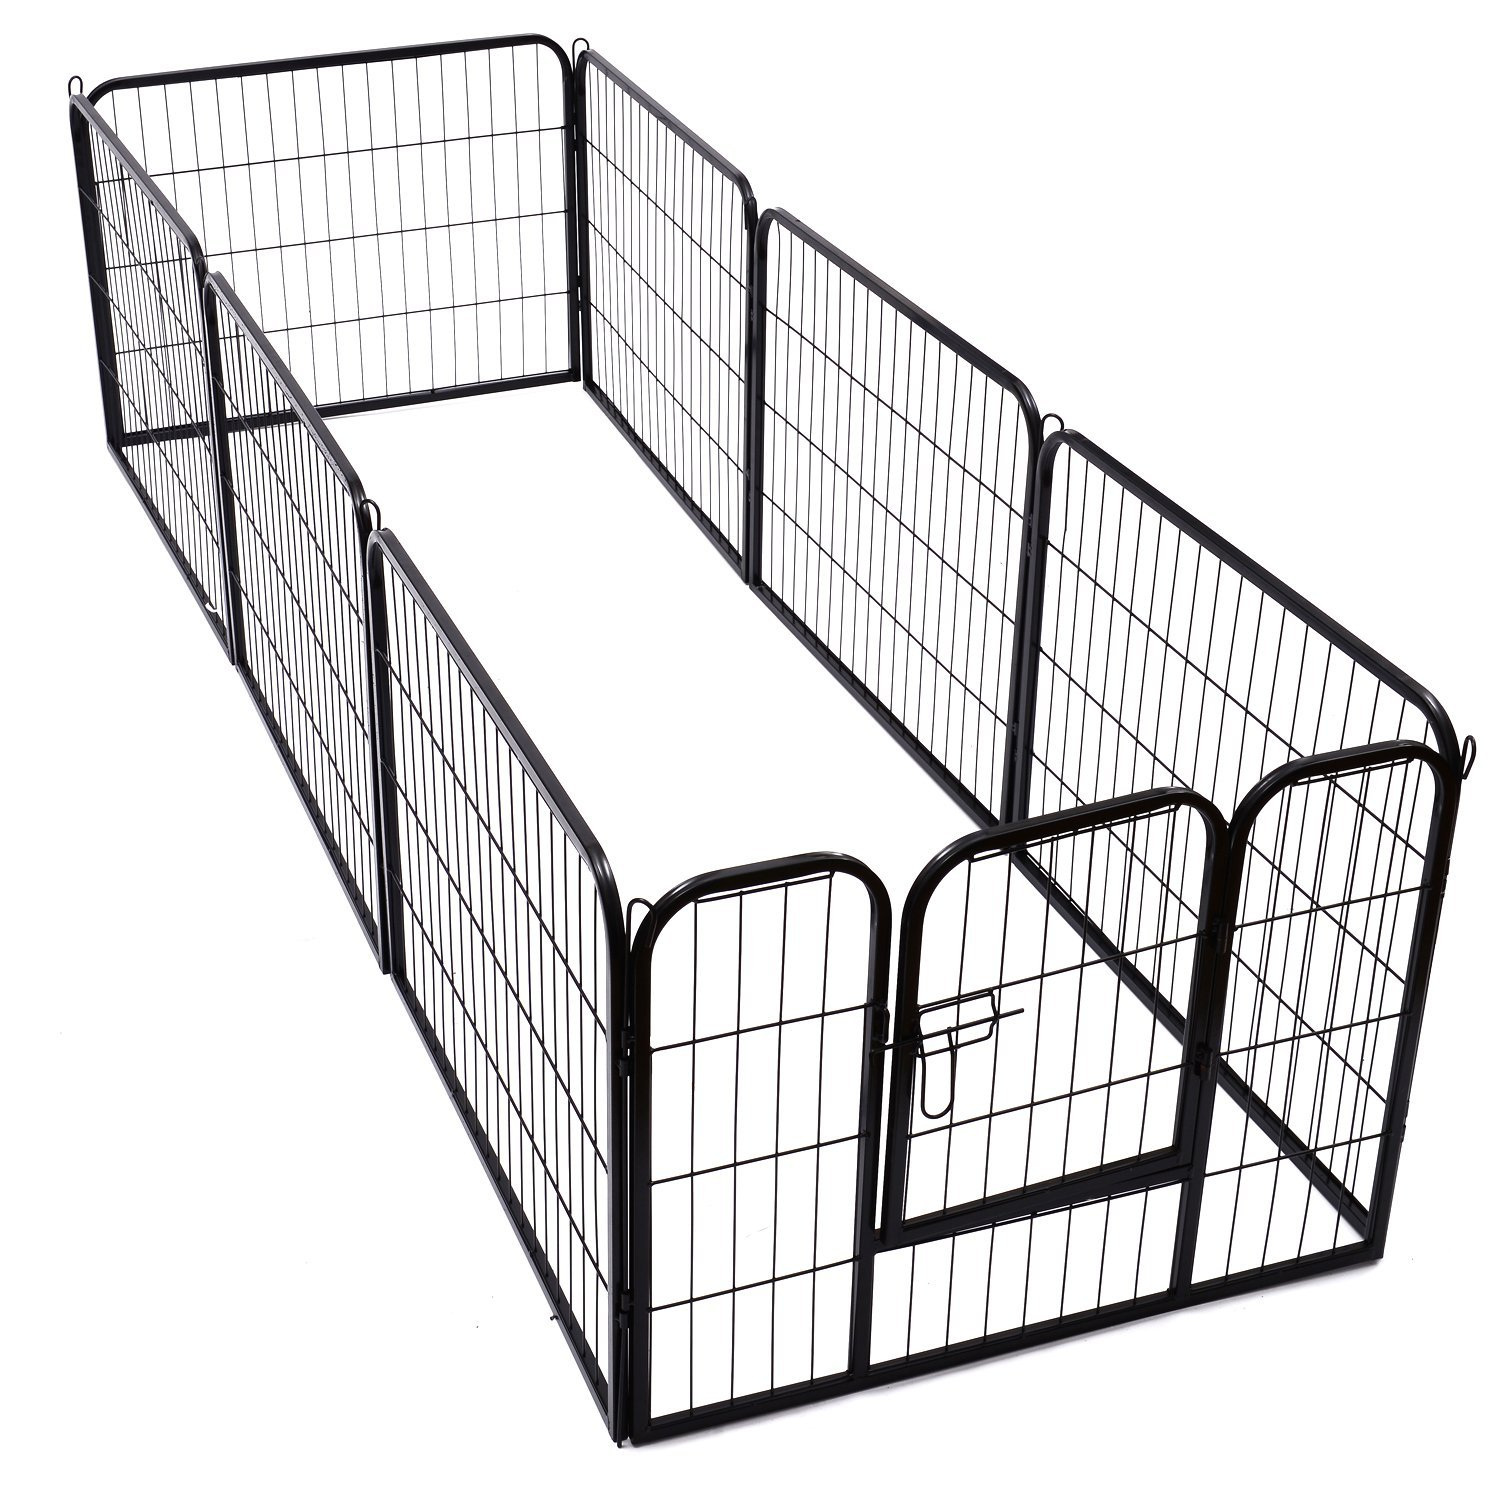 Heavy-Duty-Pet-Playpen-Dog-Exercise-Pen-Cat-Fence-Black-8-Panel-24-034-32-034-39-4-034 thumbnail 8